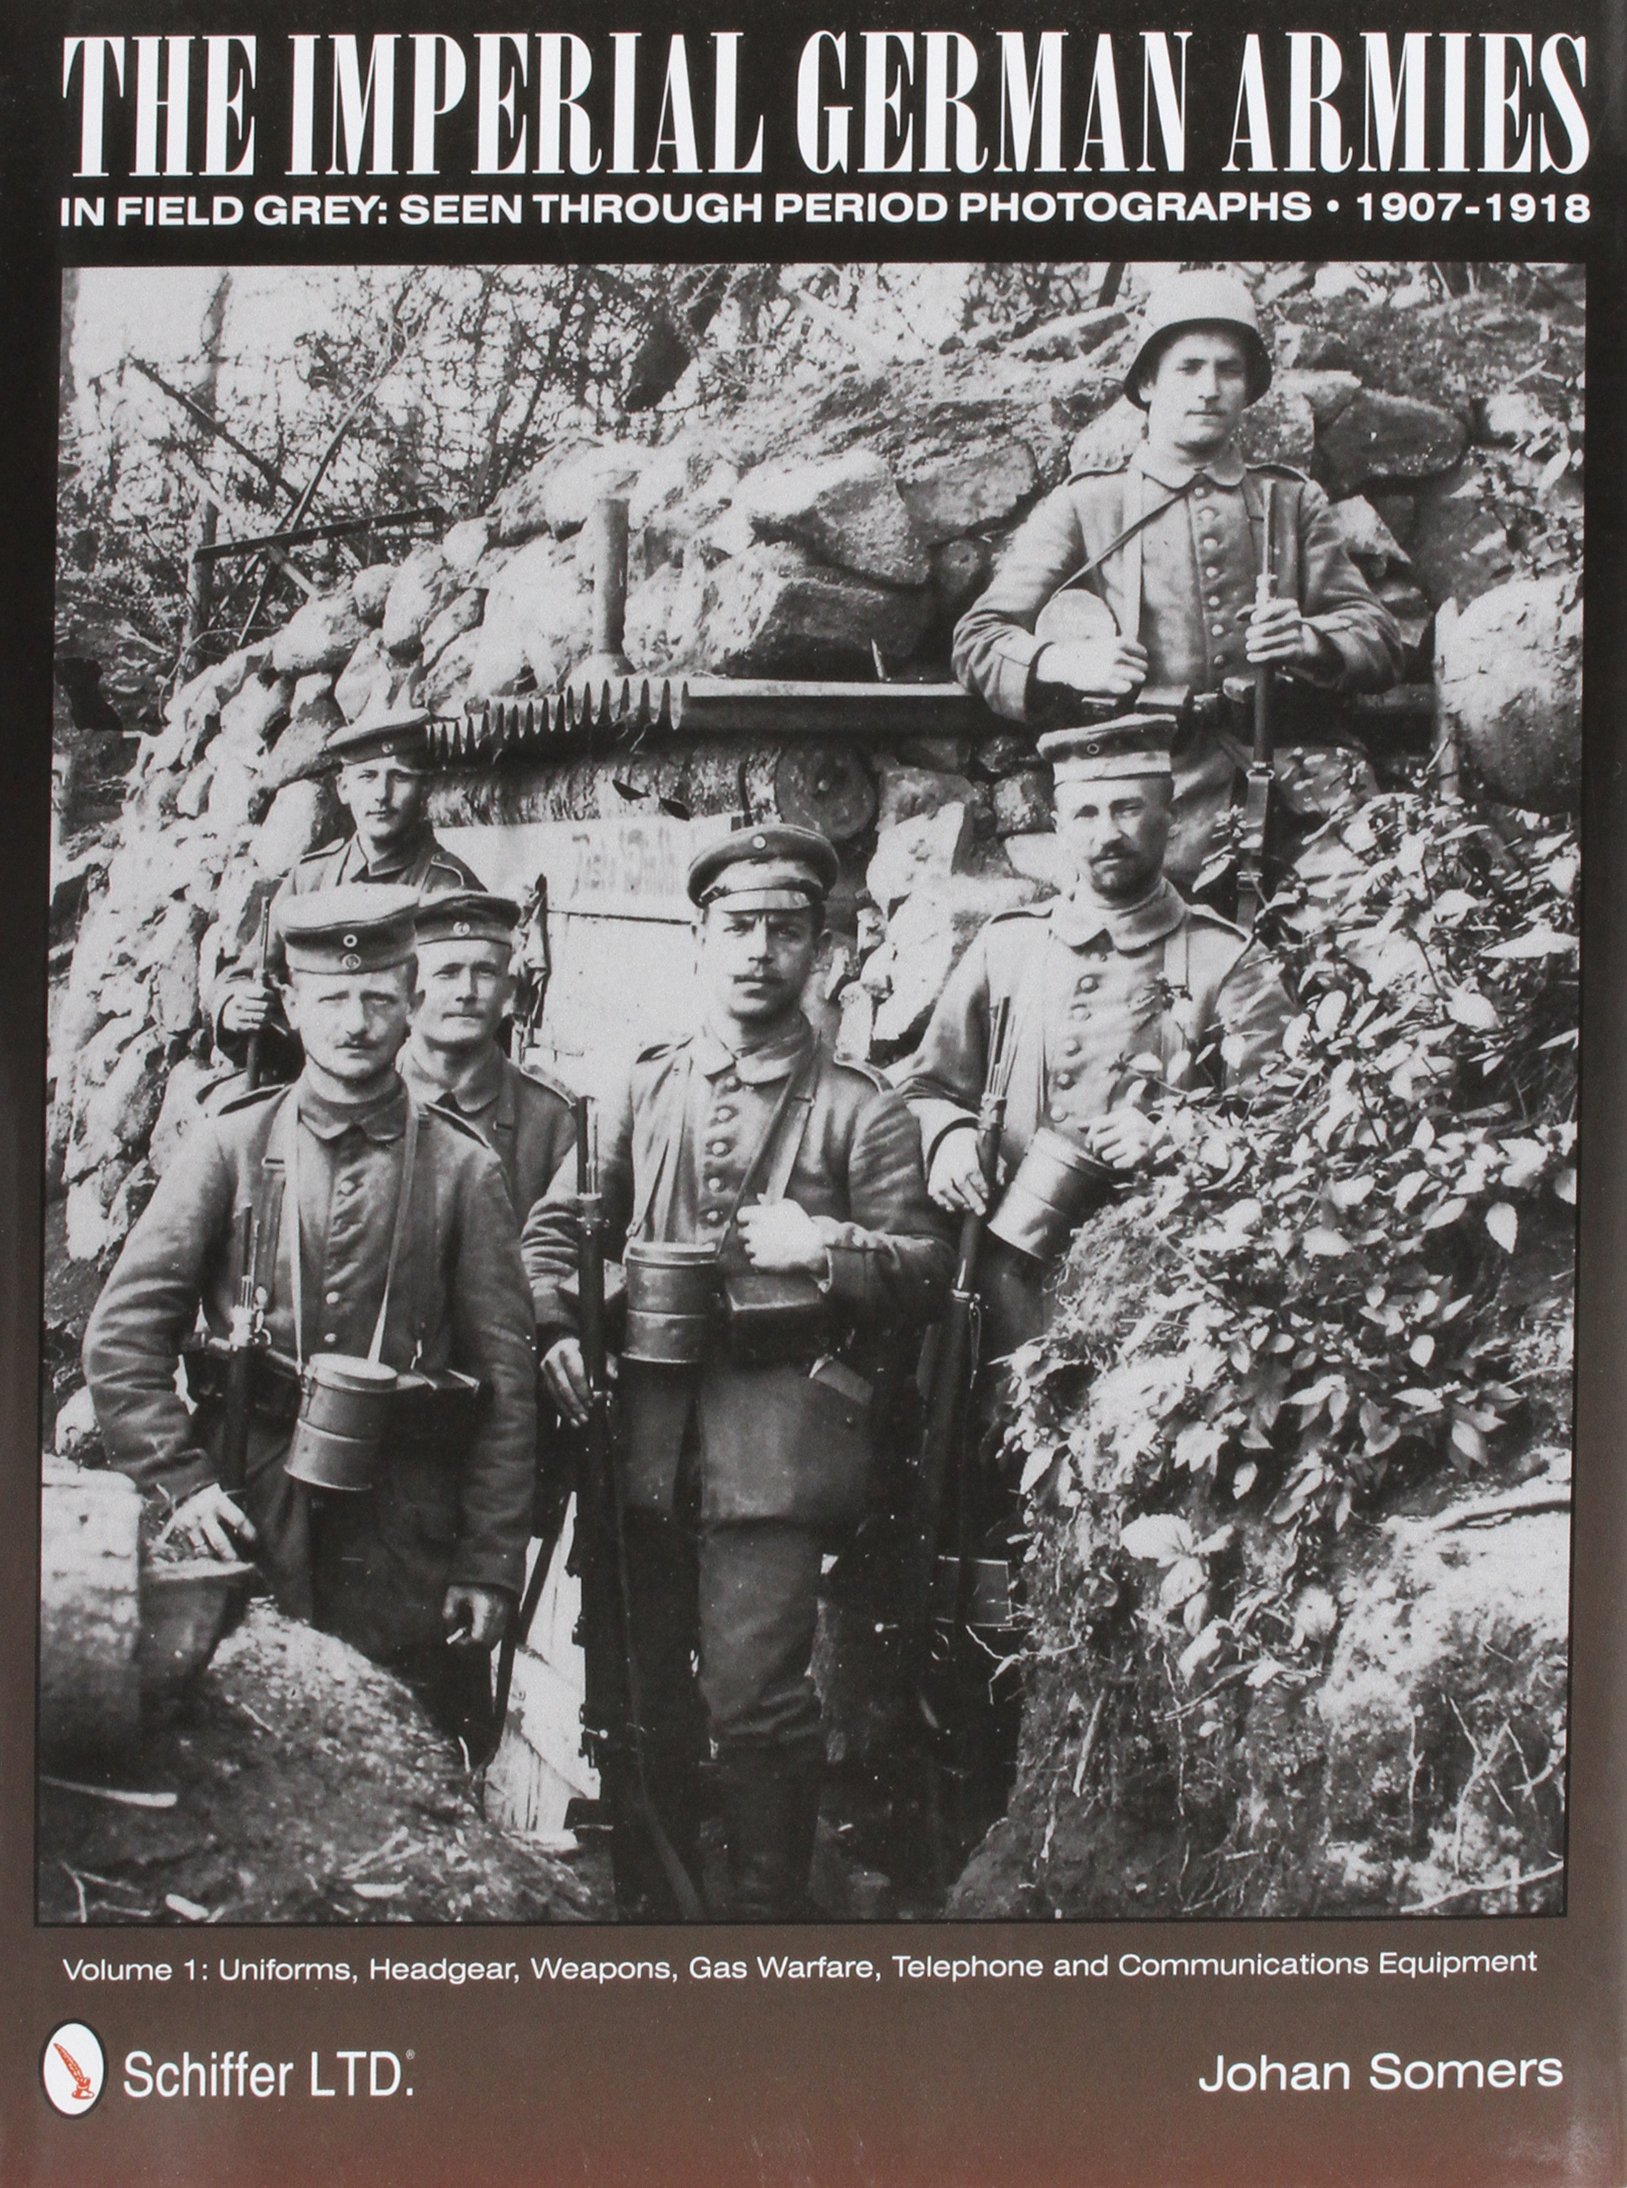 The Imperial German Armies in Field Grey Seen Through Period Photographs, 1907-1918: Volume I - Uniforms, Headgear, Weapons, Gas Warfare, Telephone and Communications Equipment pdf